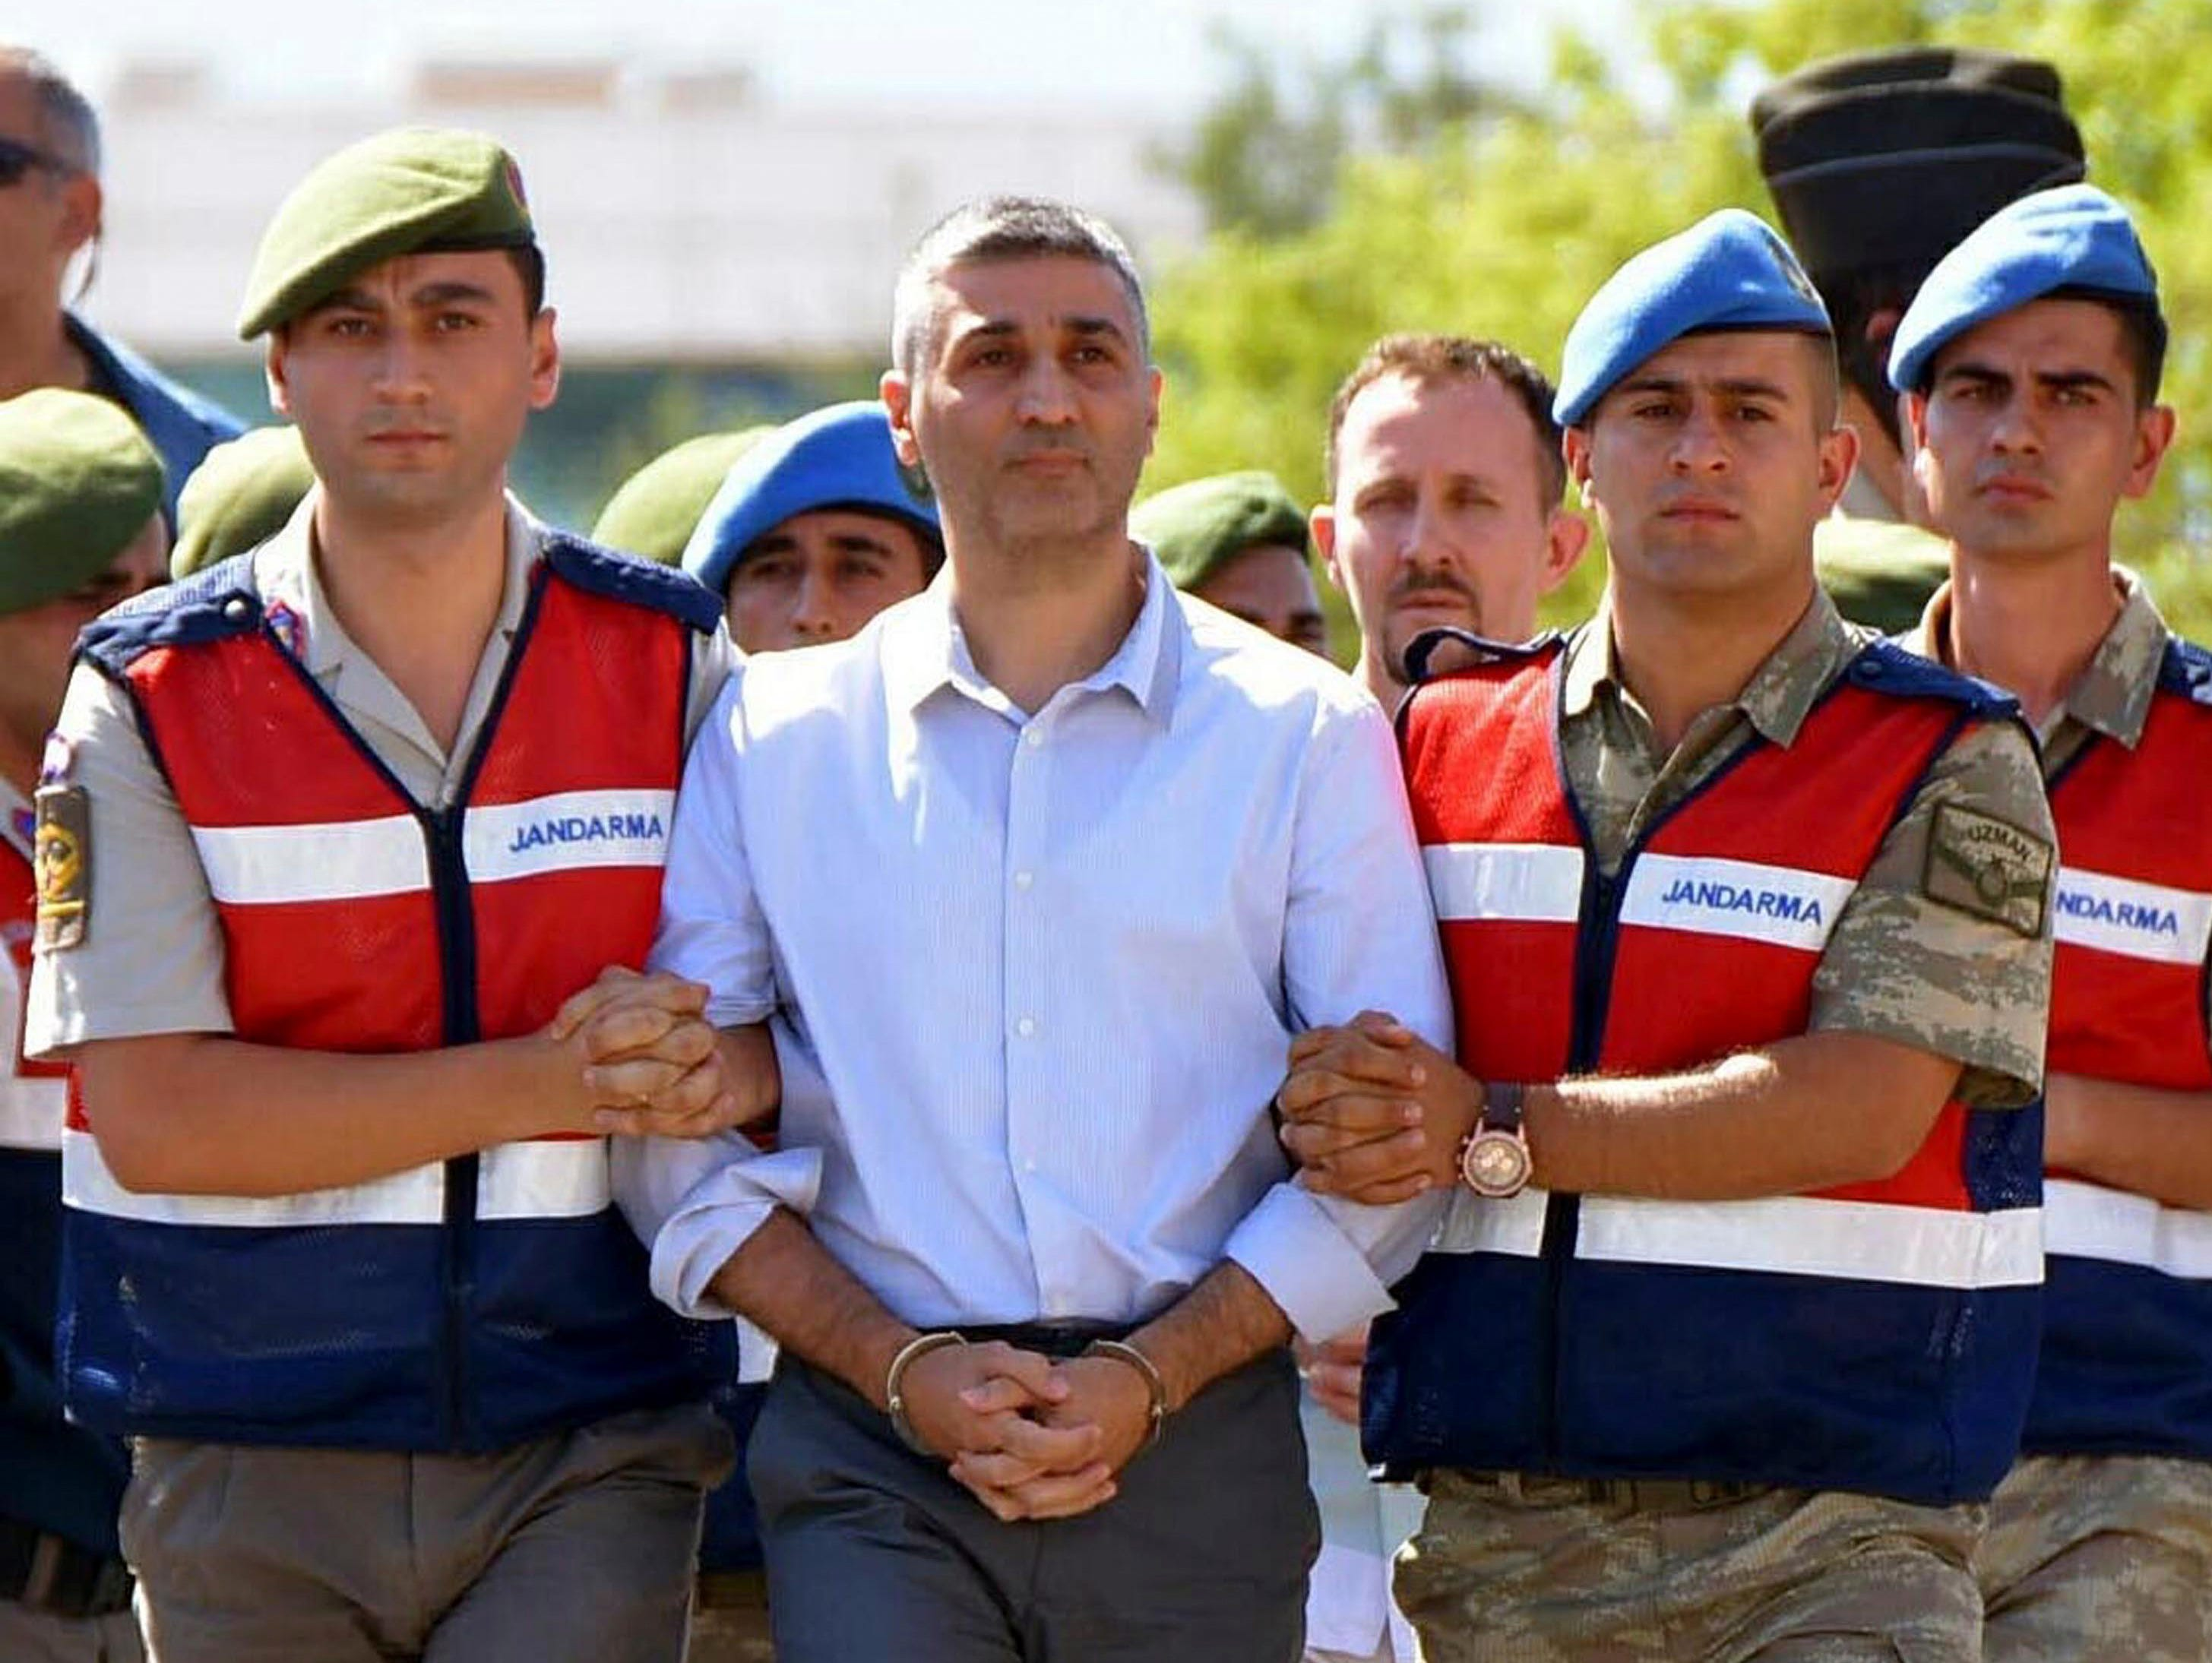 Turkey: 40 people sentenced to life in prison for attempting to kill President Erdogan